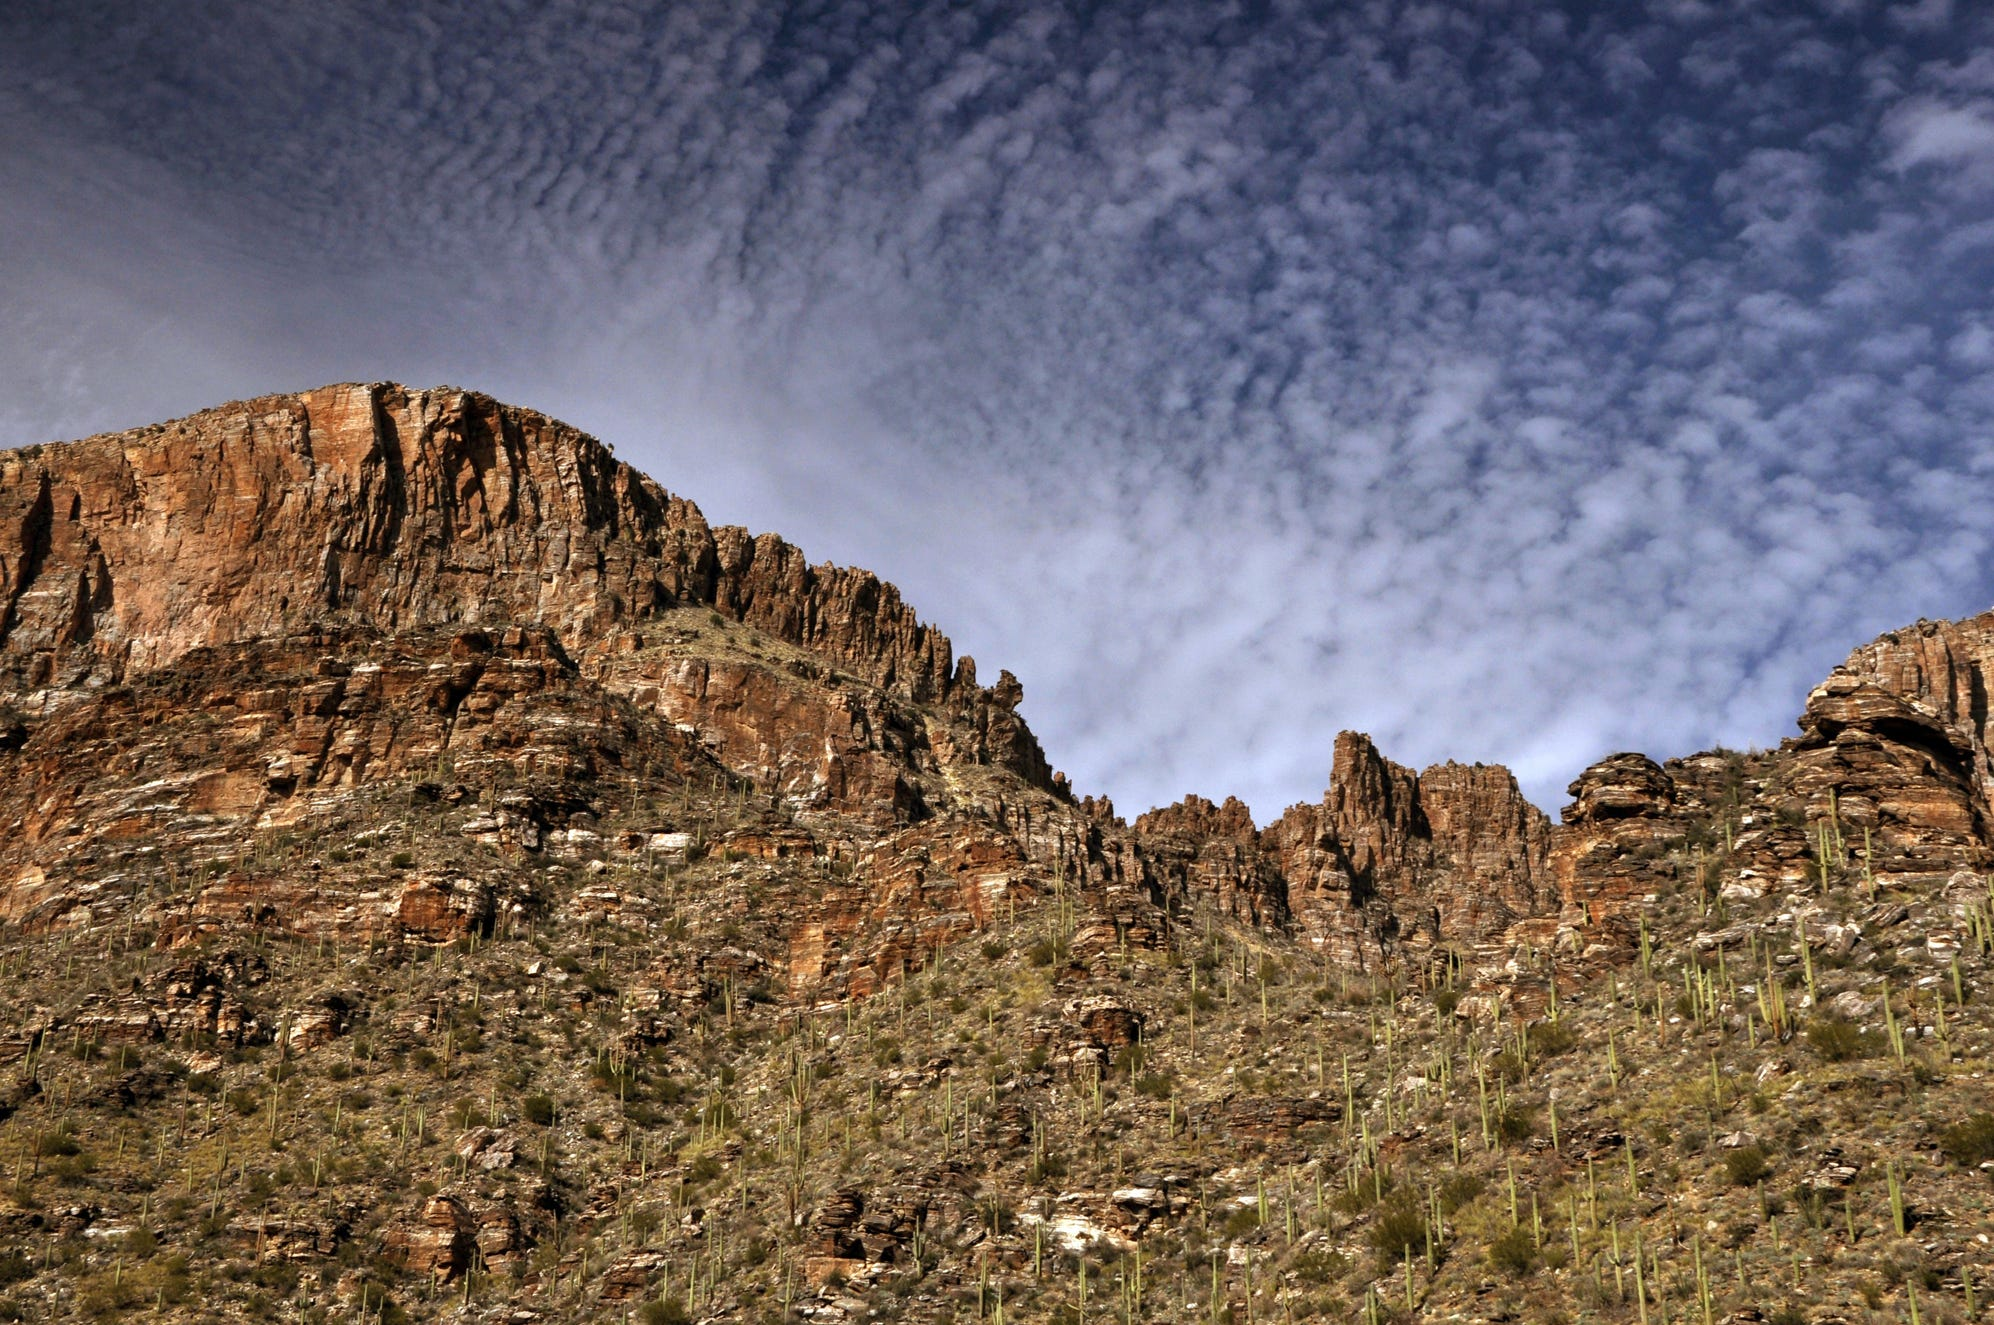 http://www azcentral com/picture-gallery/travel/arizona/hiking